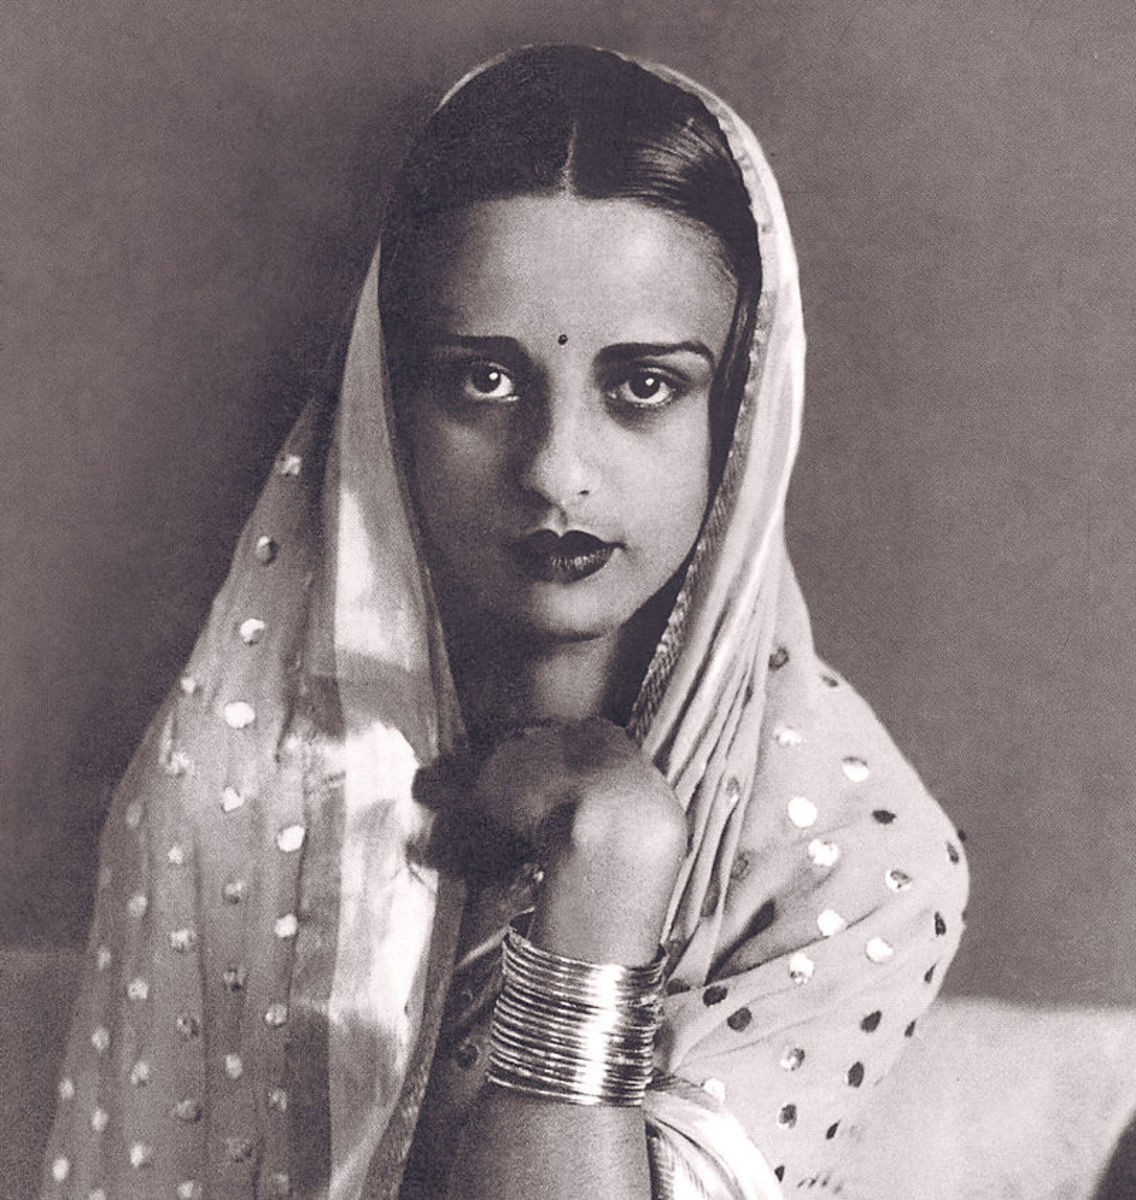 Amrita Sher-Gil: Painter (1913-1941)